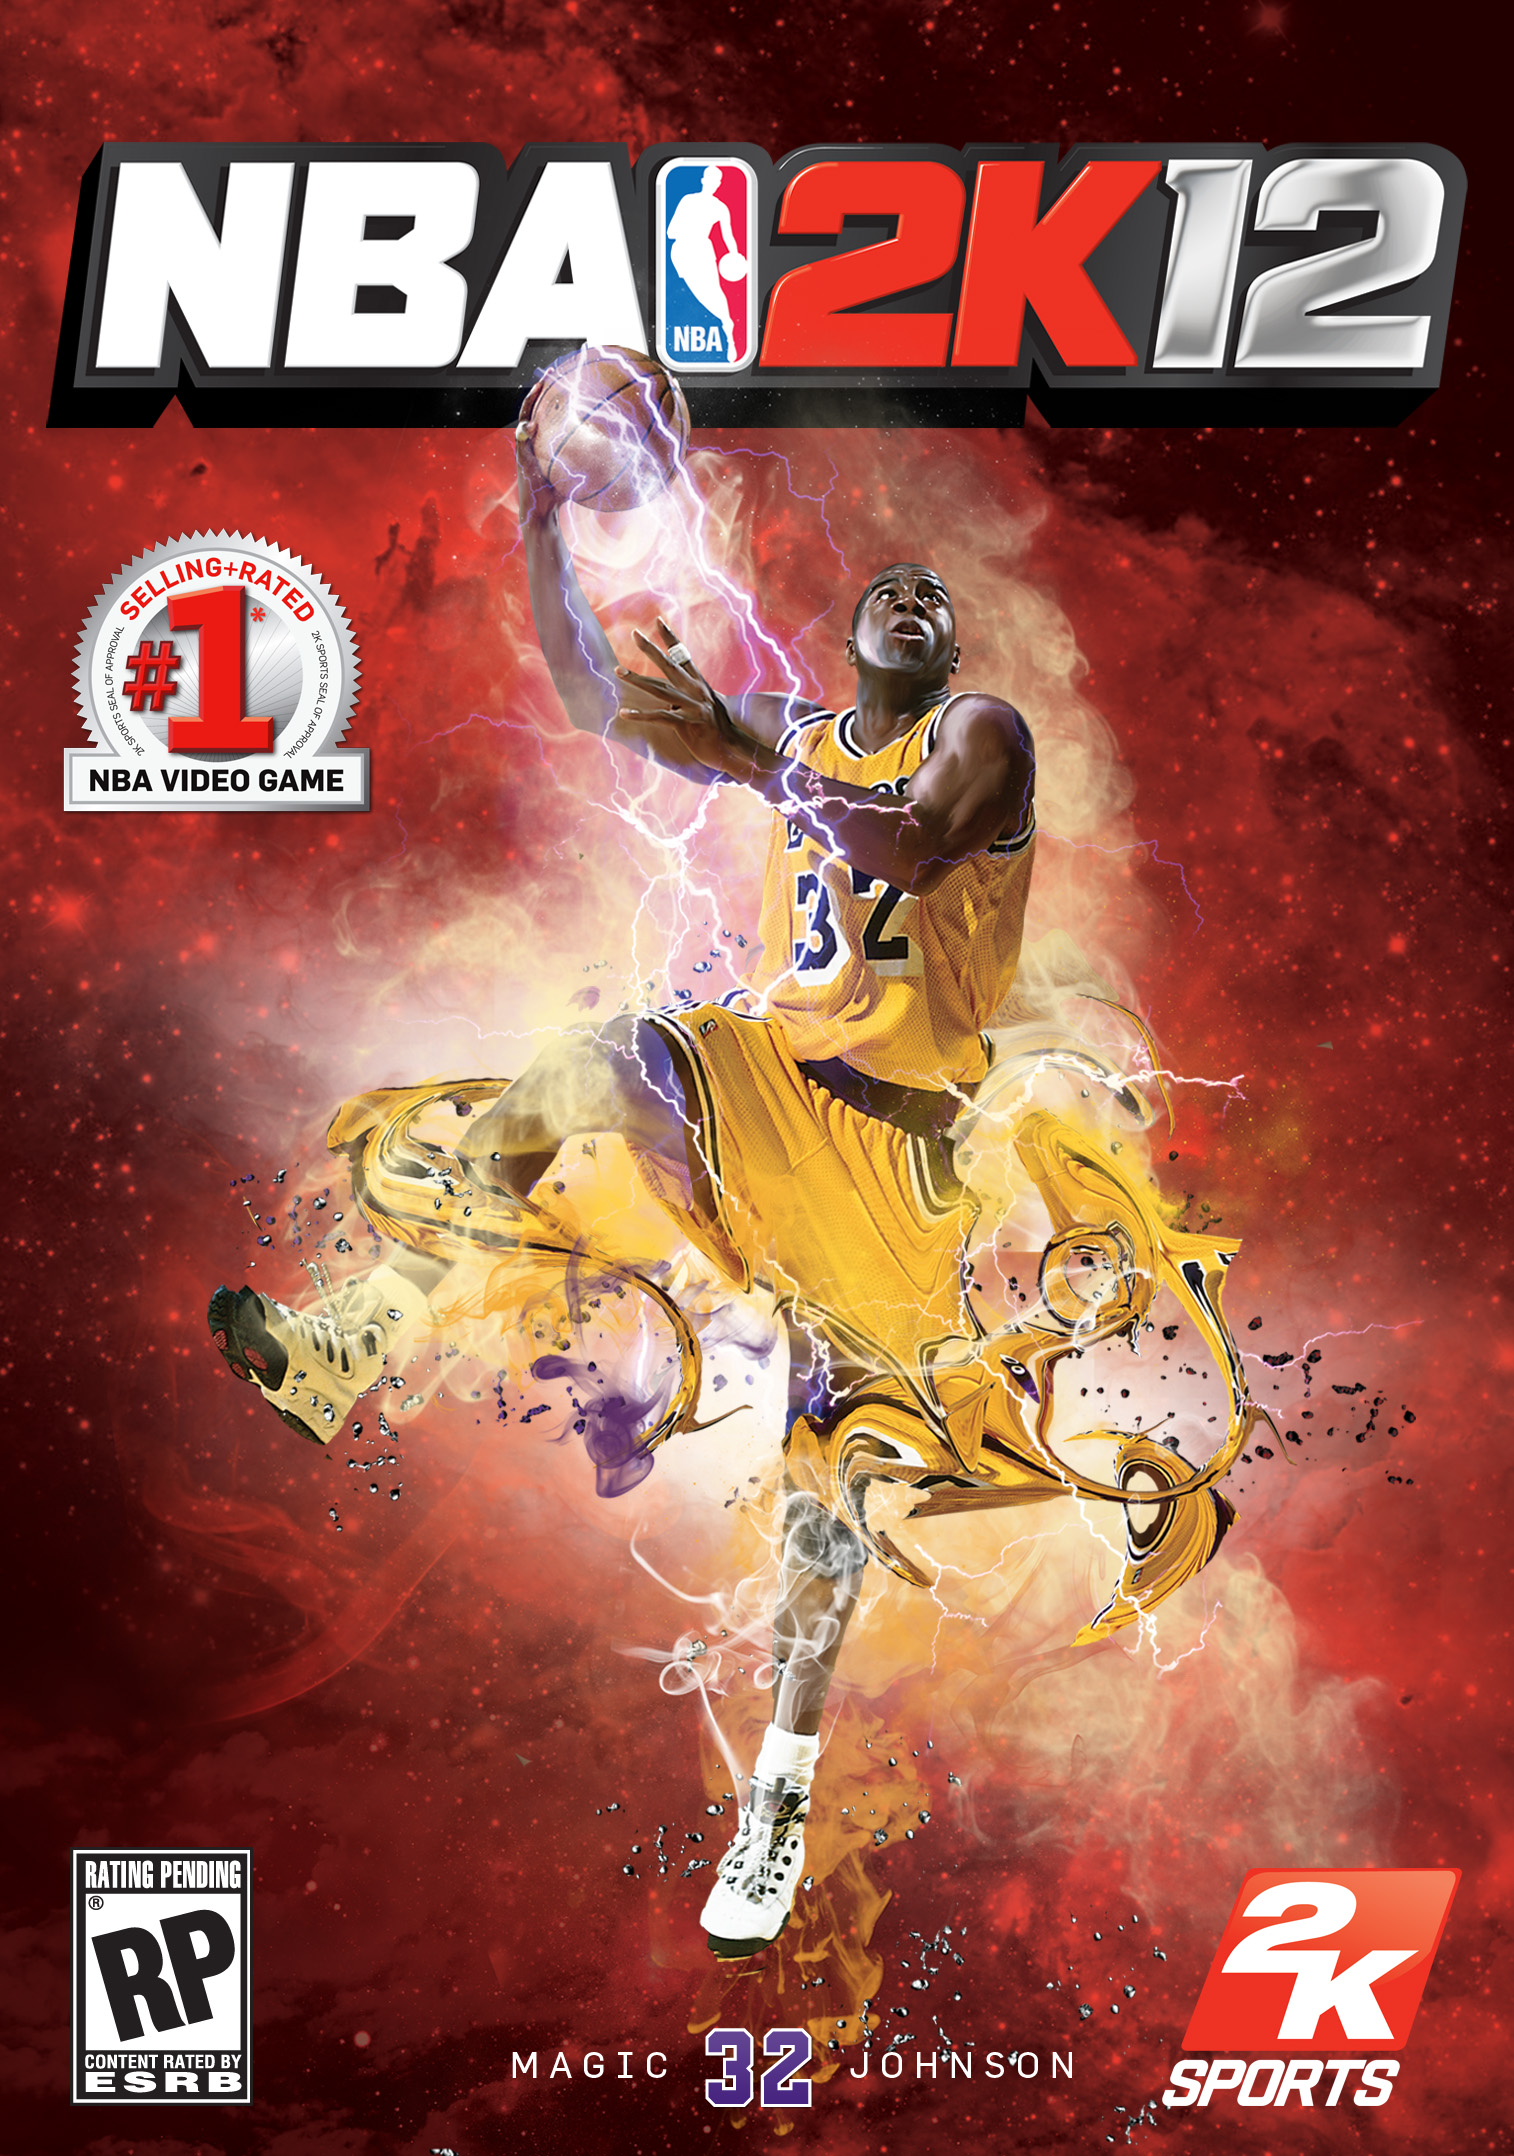 New Cover Art For Nba 2k12 The Industry Cosign